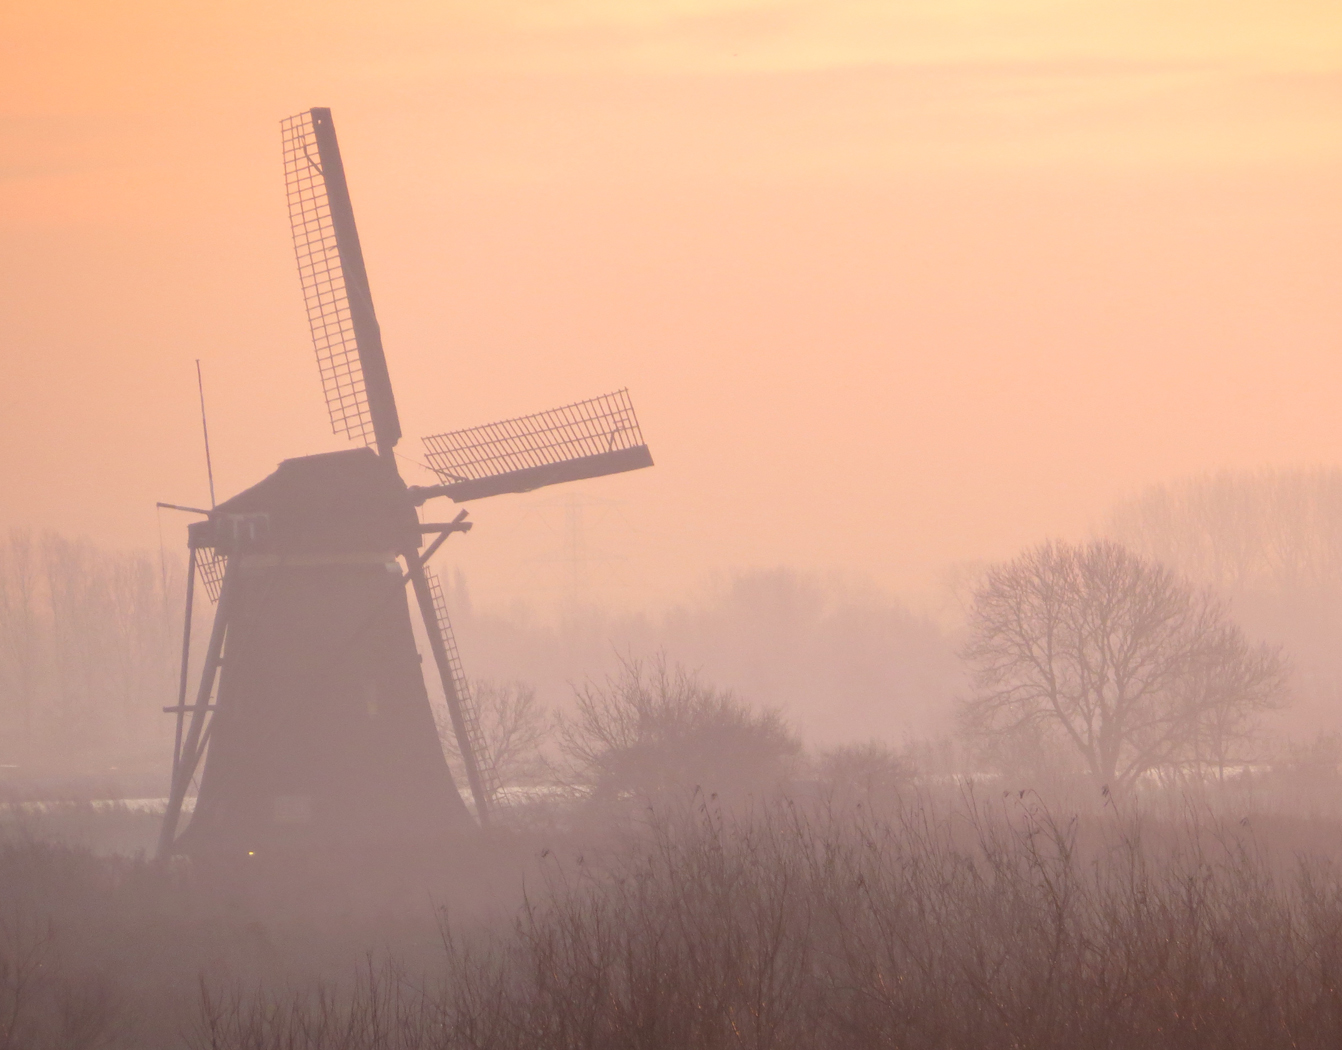 DUTCH DAWN by Colin Botwright